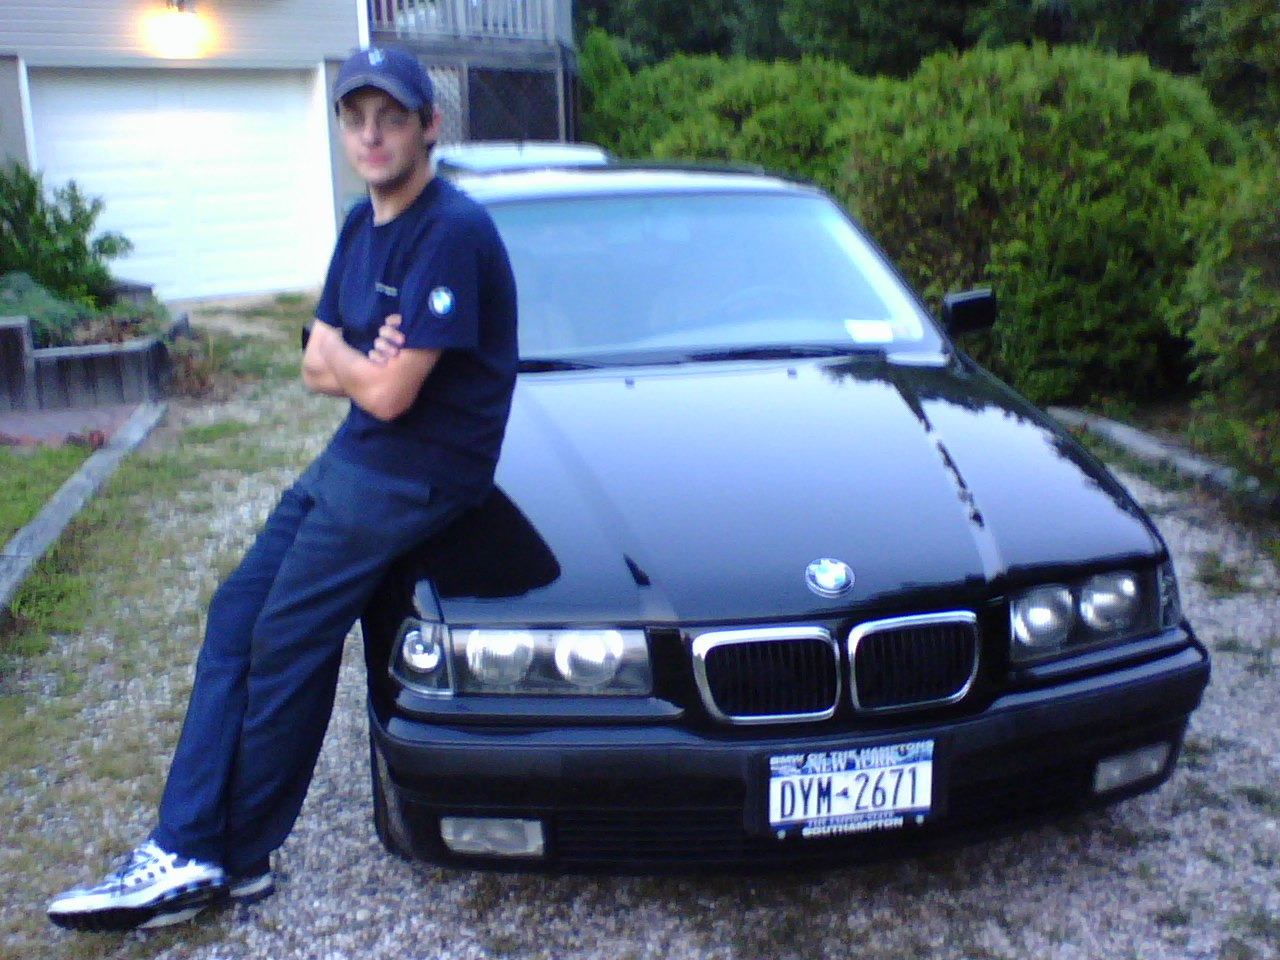 Attachment besides Bmw I Pic furthermore Sigpic additionally Attachment likewise Pic. on 2008 bmw 328i convertible battery location